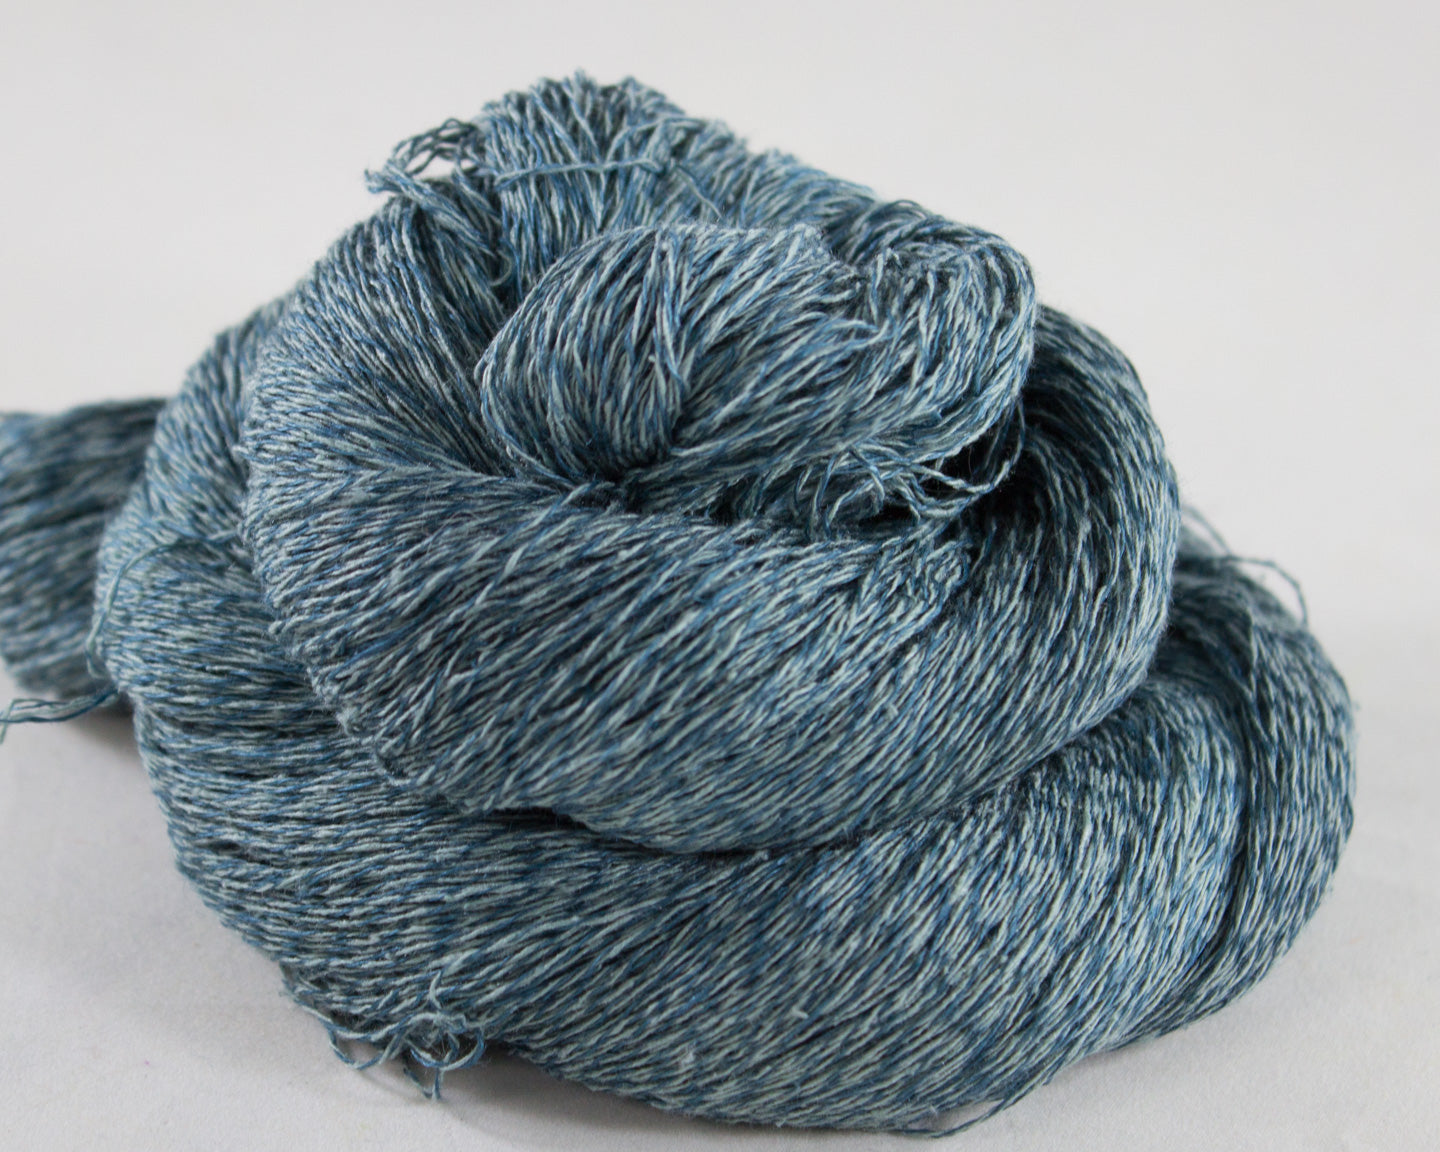 Lace Weight Linen/Silk Yarn - teal